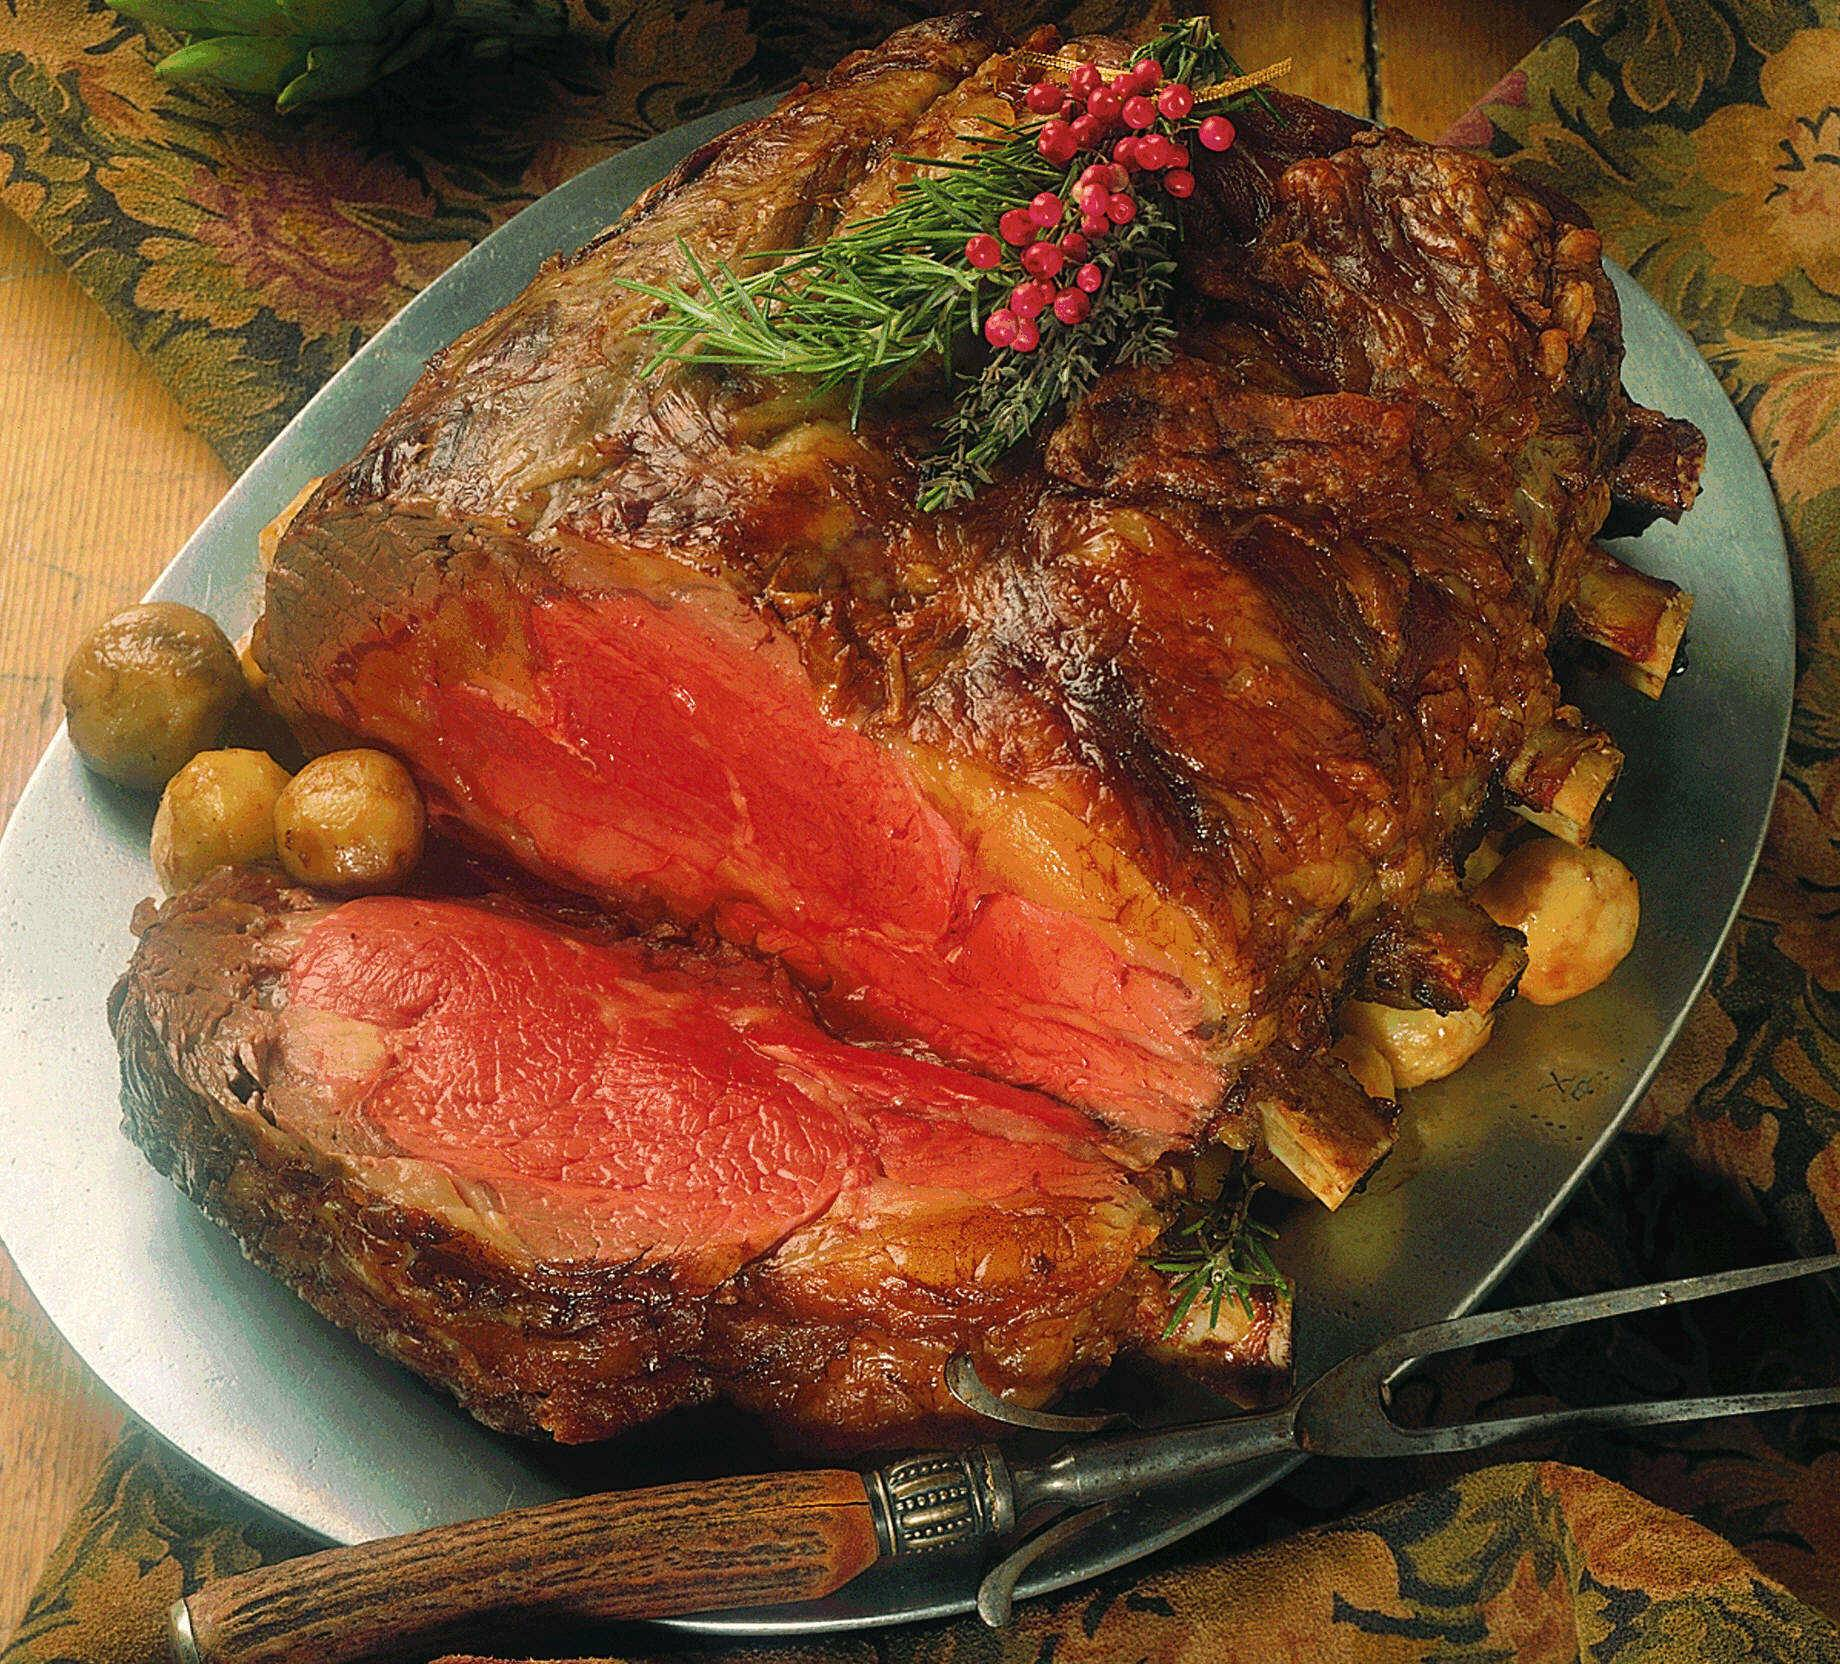 Top 5 Places To Order Prime Rib In Atlanta